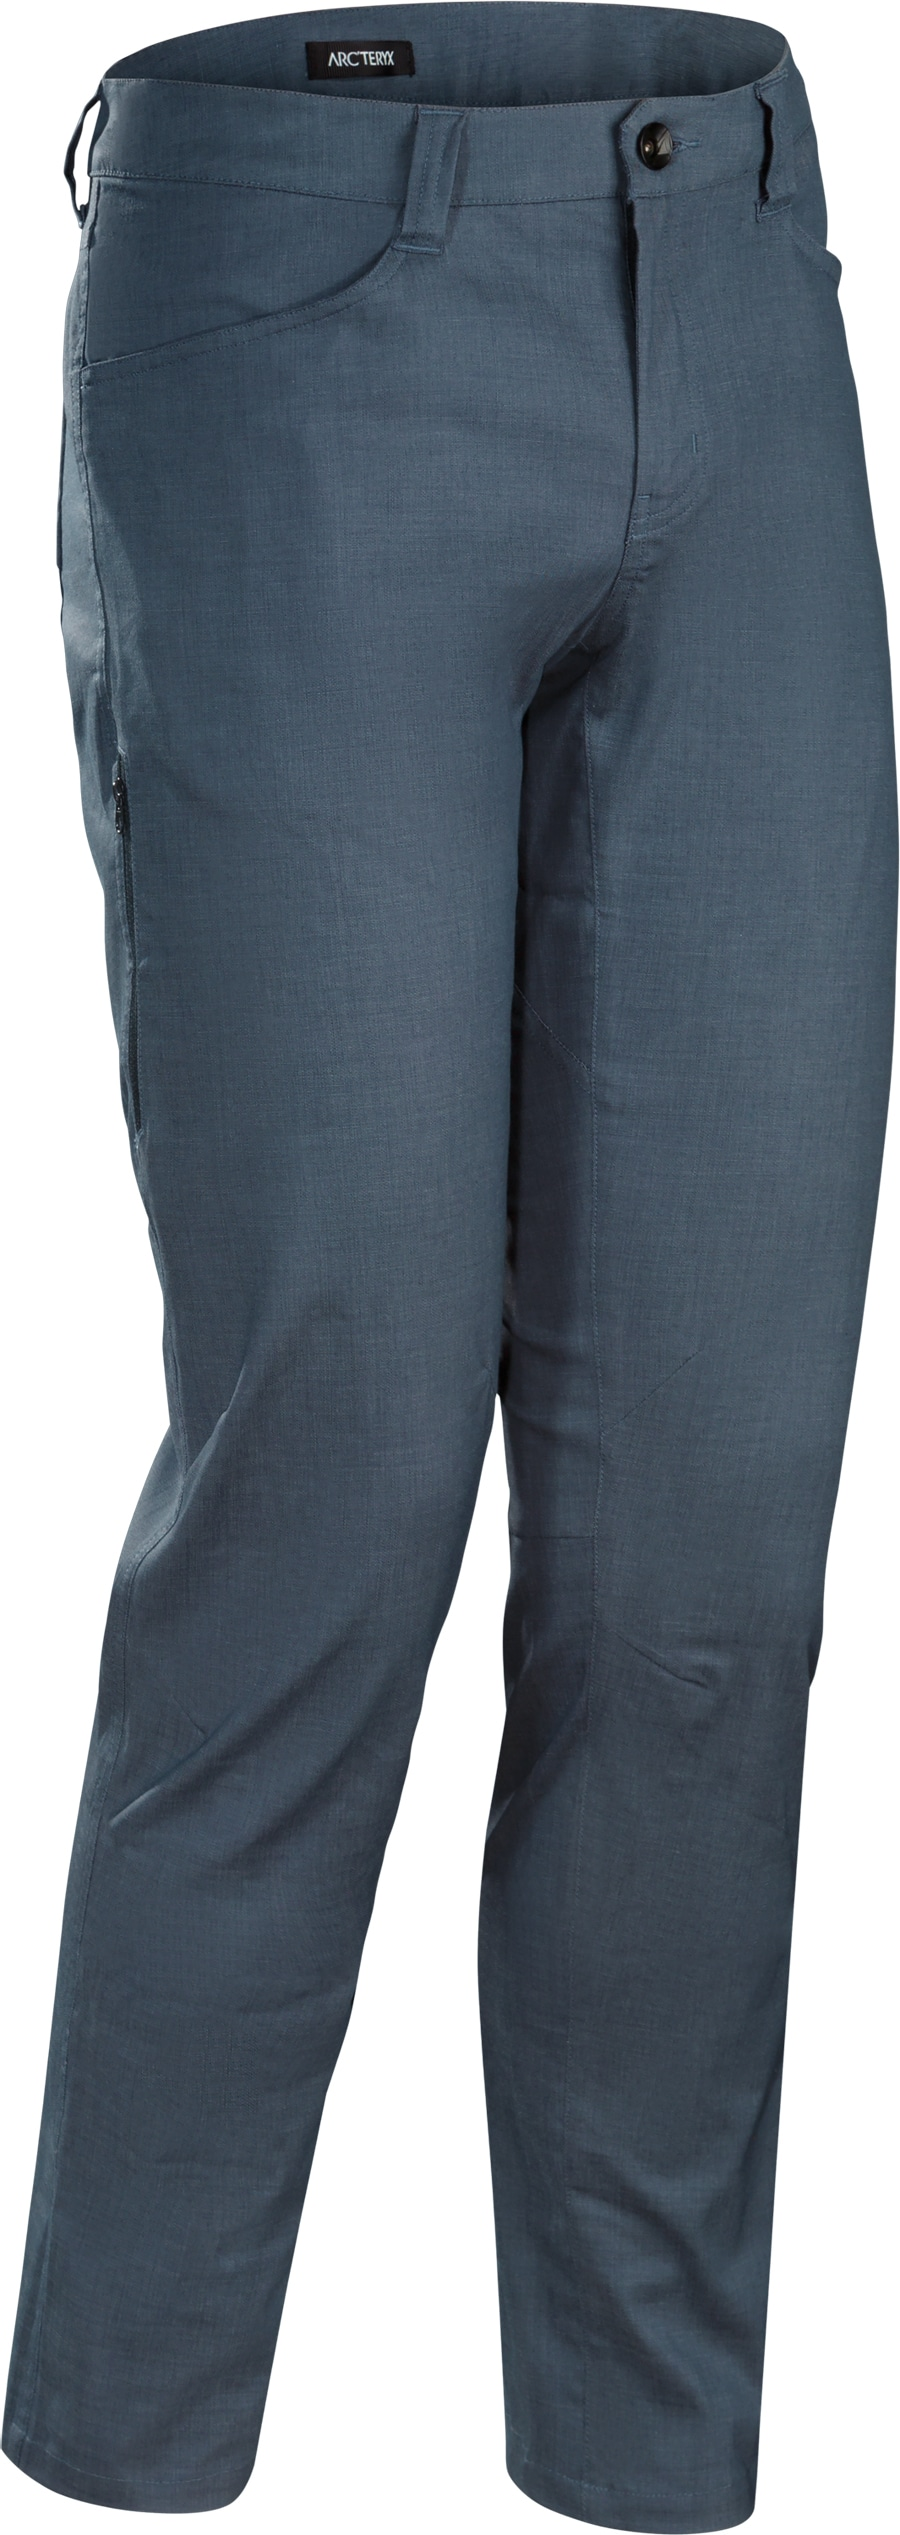 Arc'teryx A2B Commuter Pant Nighthawk